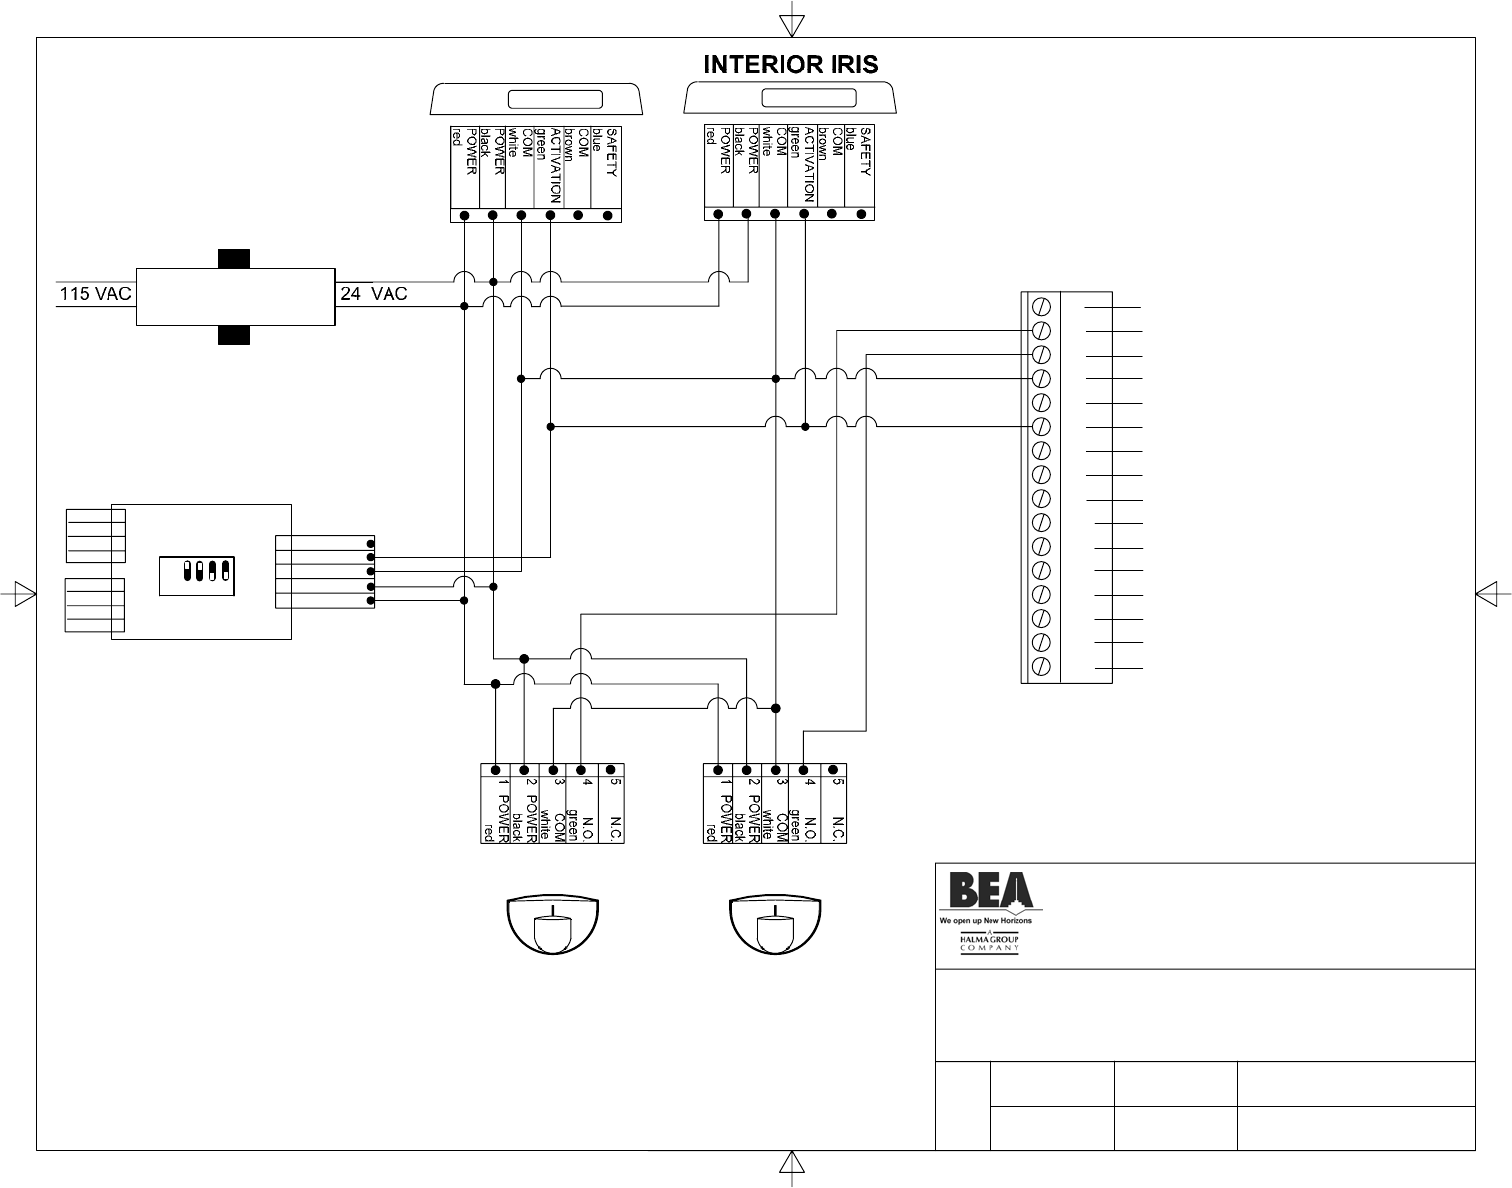 94039b03 c6f0 4630 ae4b cd4abc395ce4 bg1 bea switch c2150 user guide manualsonline com bea ixio wiring diagram at gsmportal.co